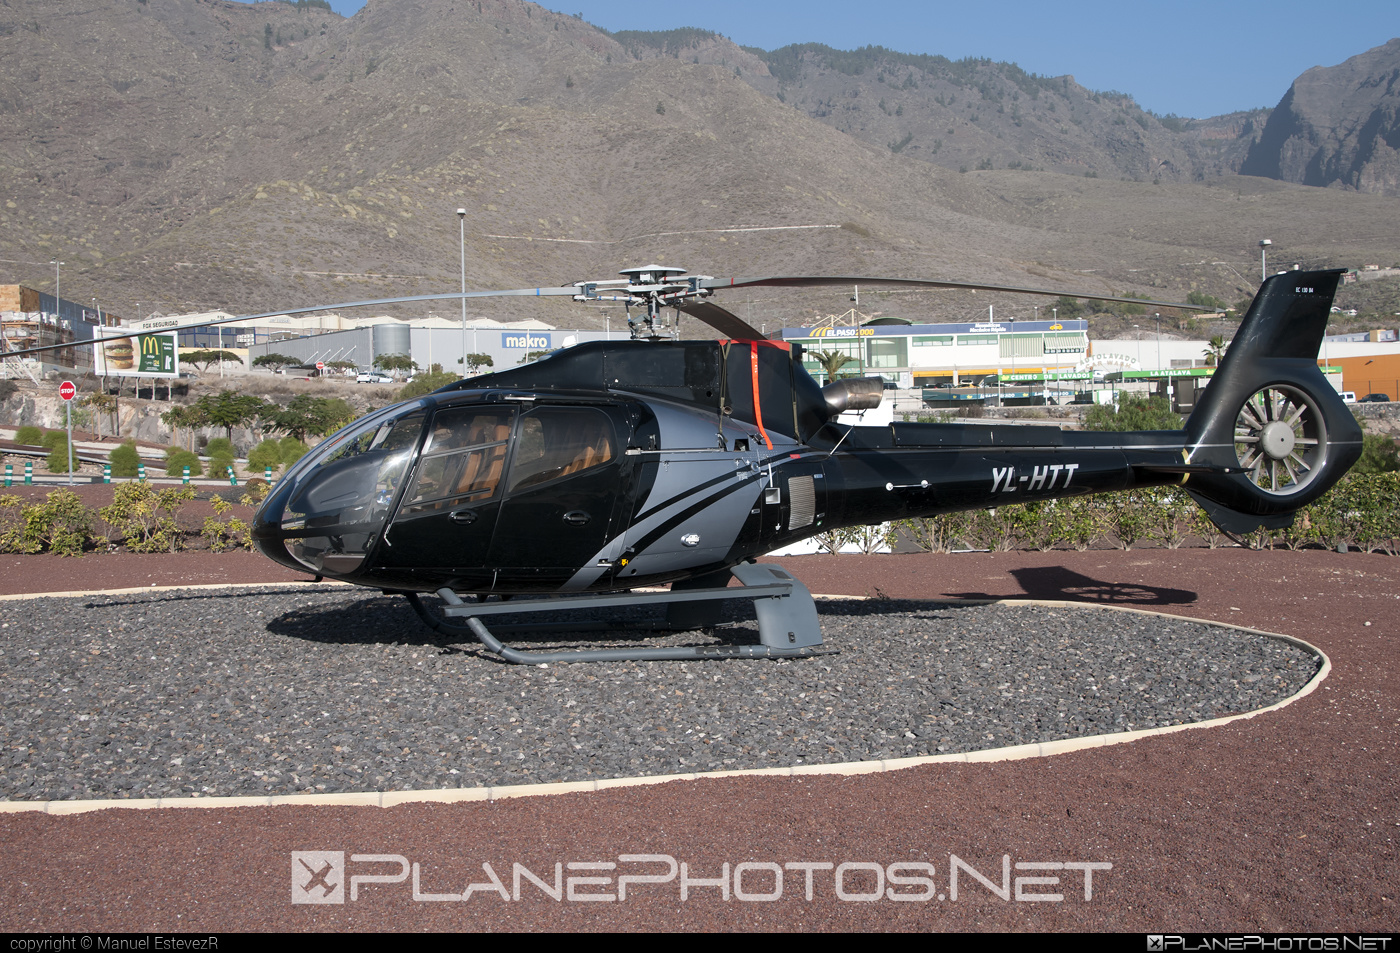 Eurocopter EC130 B4 - YL-HTT operated by Private operator #eurocopter